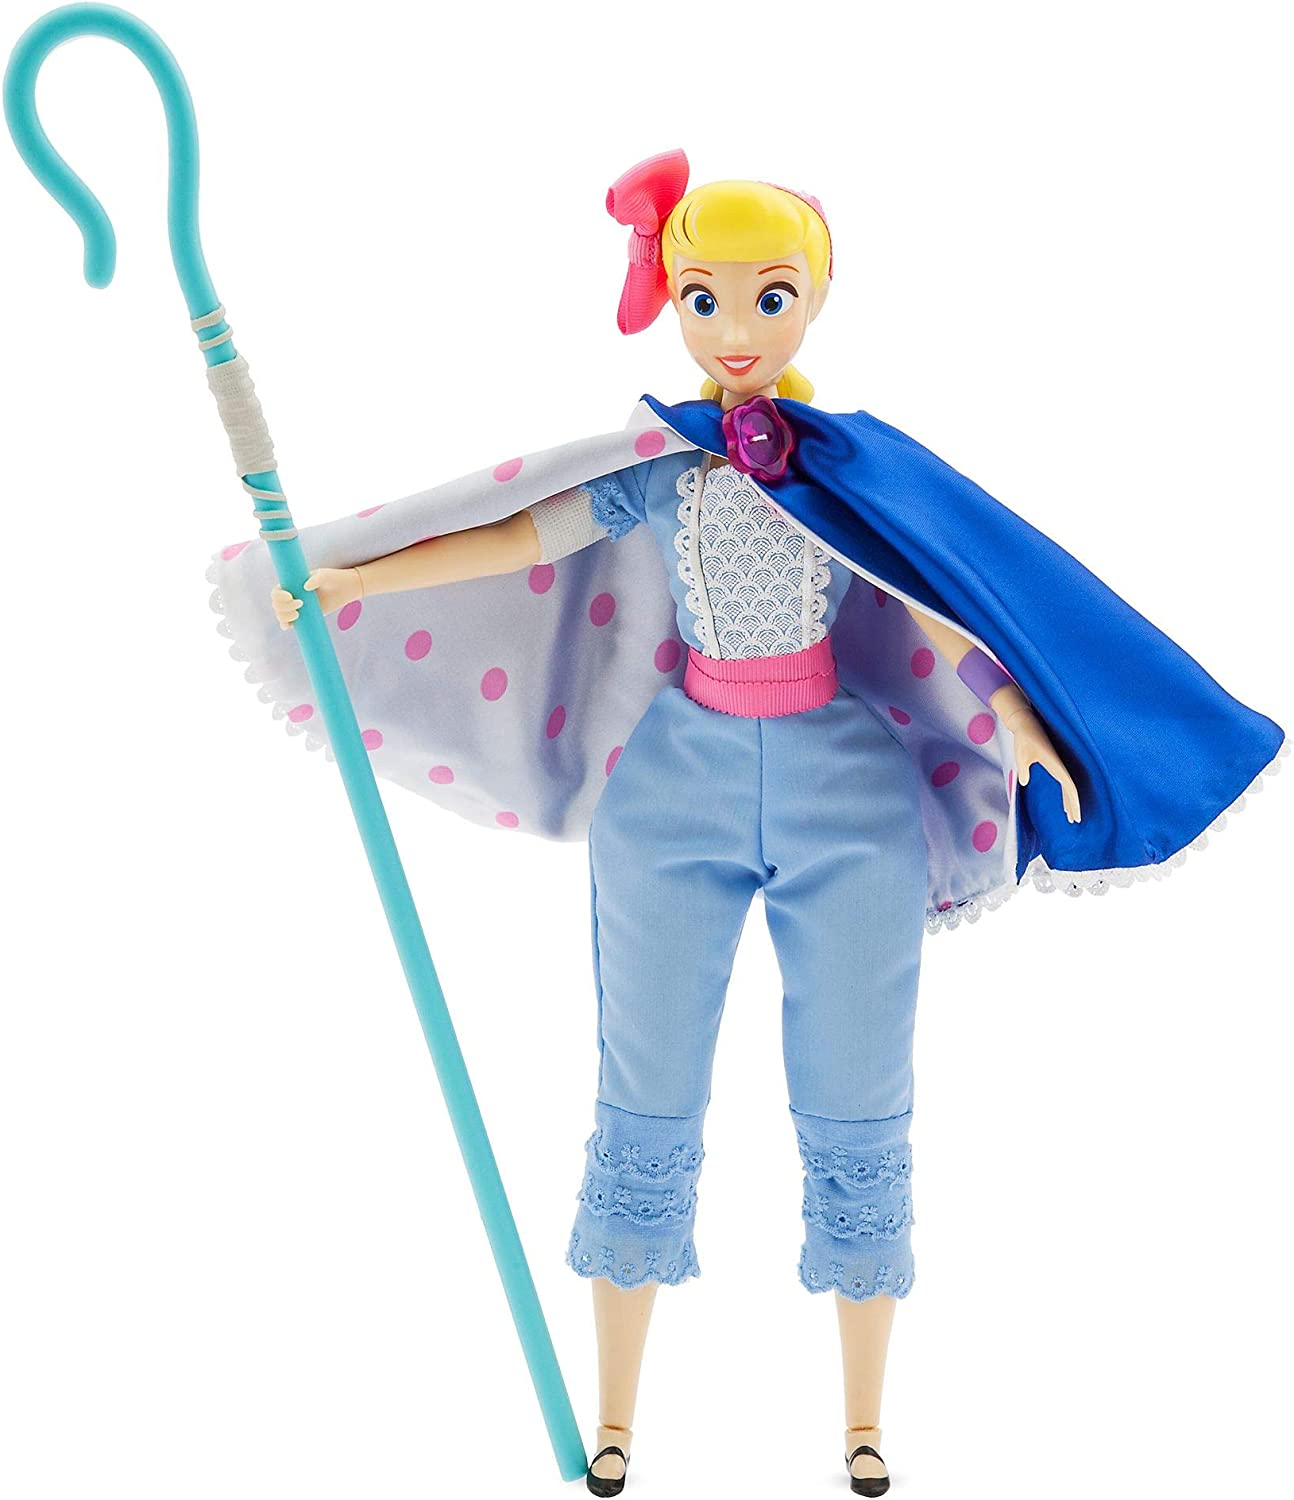 Official Disney Toy Story Bo Peep Talking 32cm Action Figure